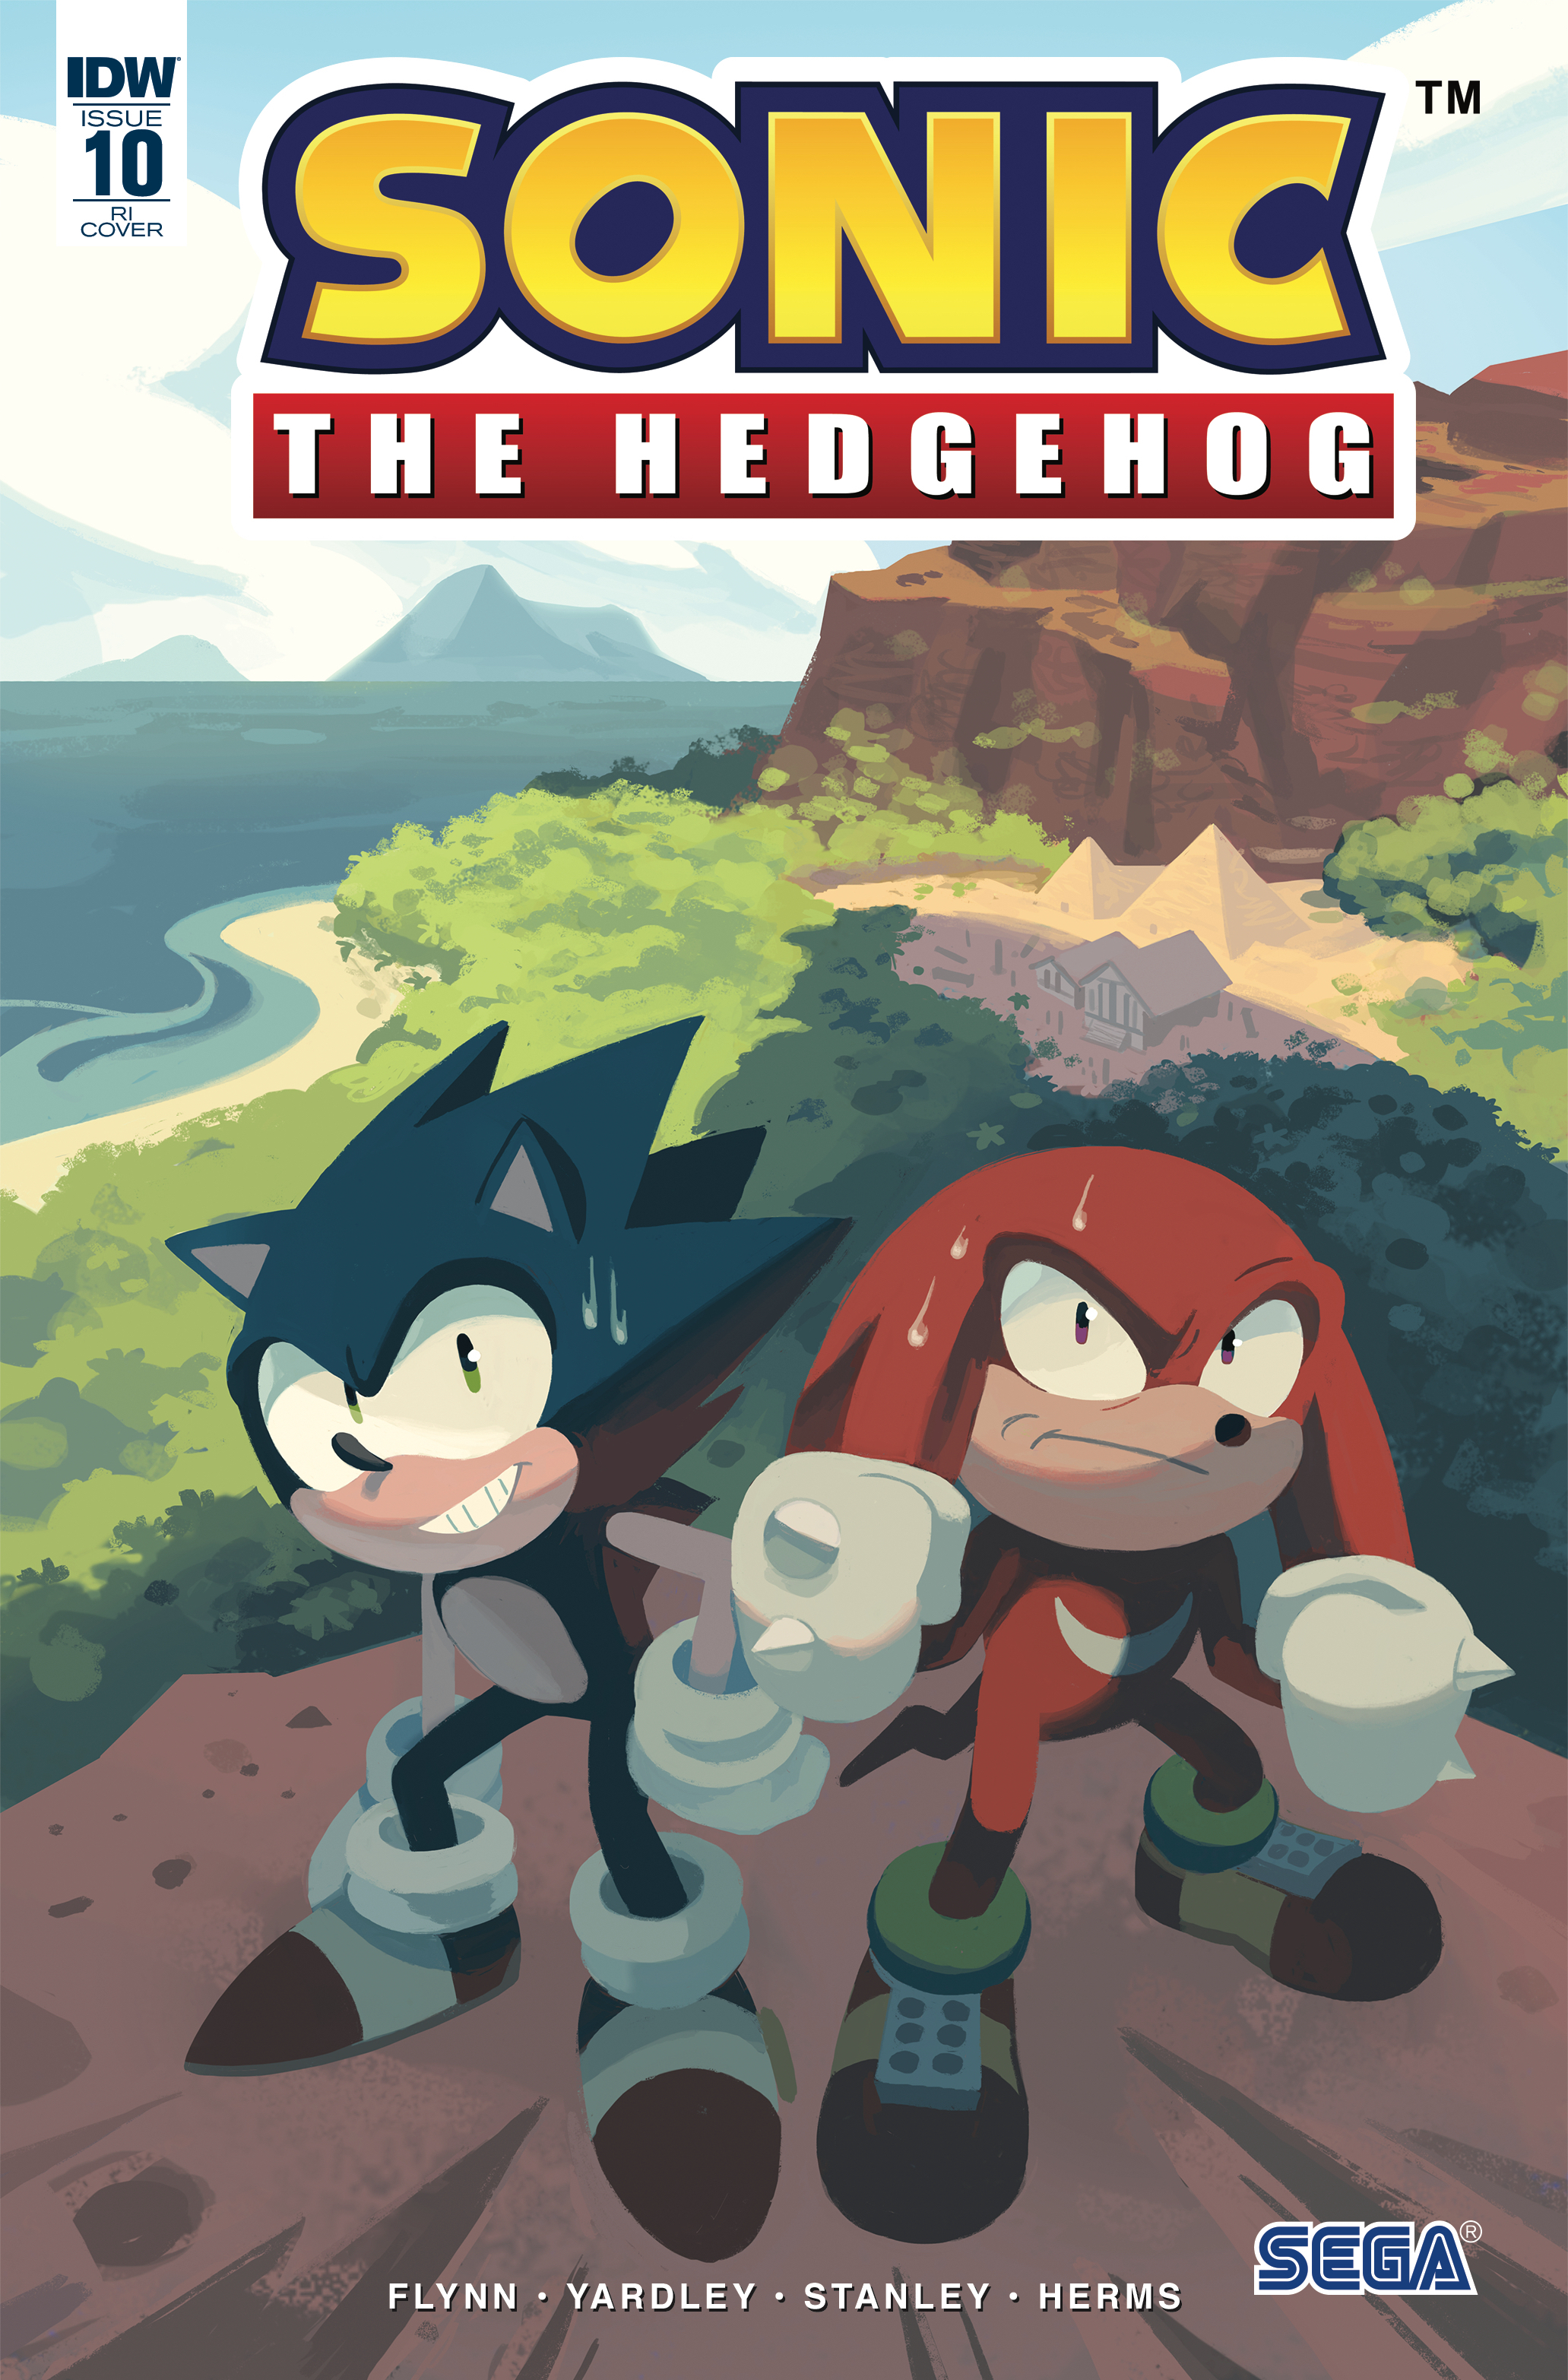 SONIC THE HEDGEHOG #10 10 COPY INCV FOURDRAINE